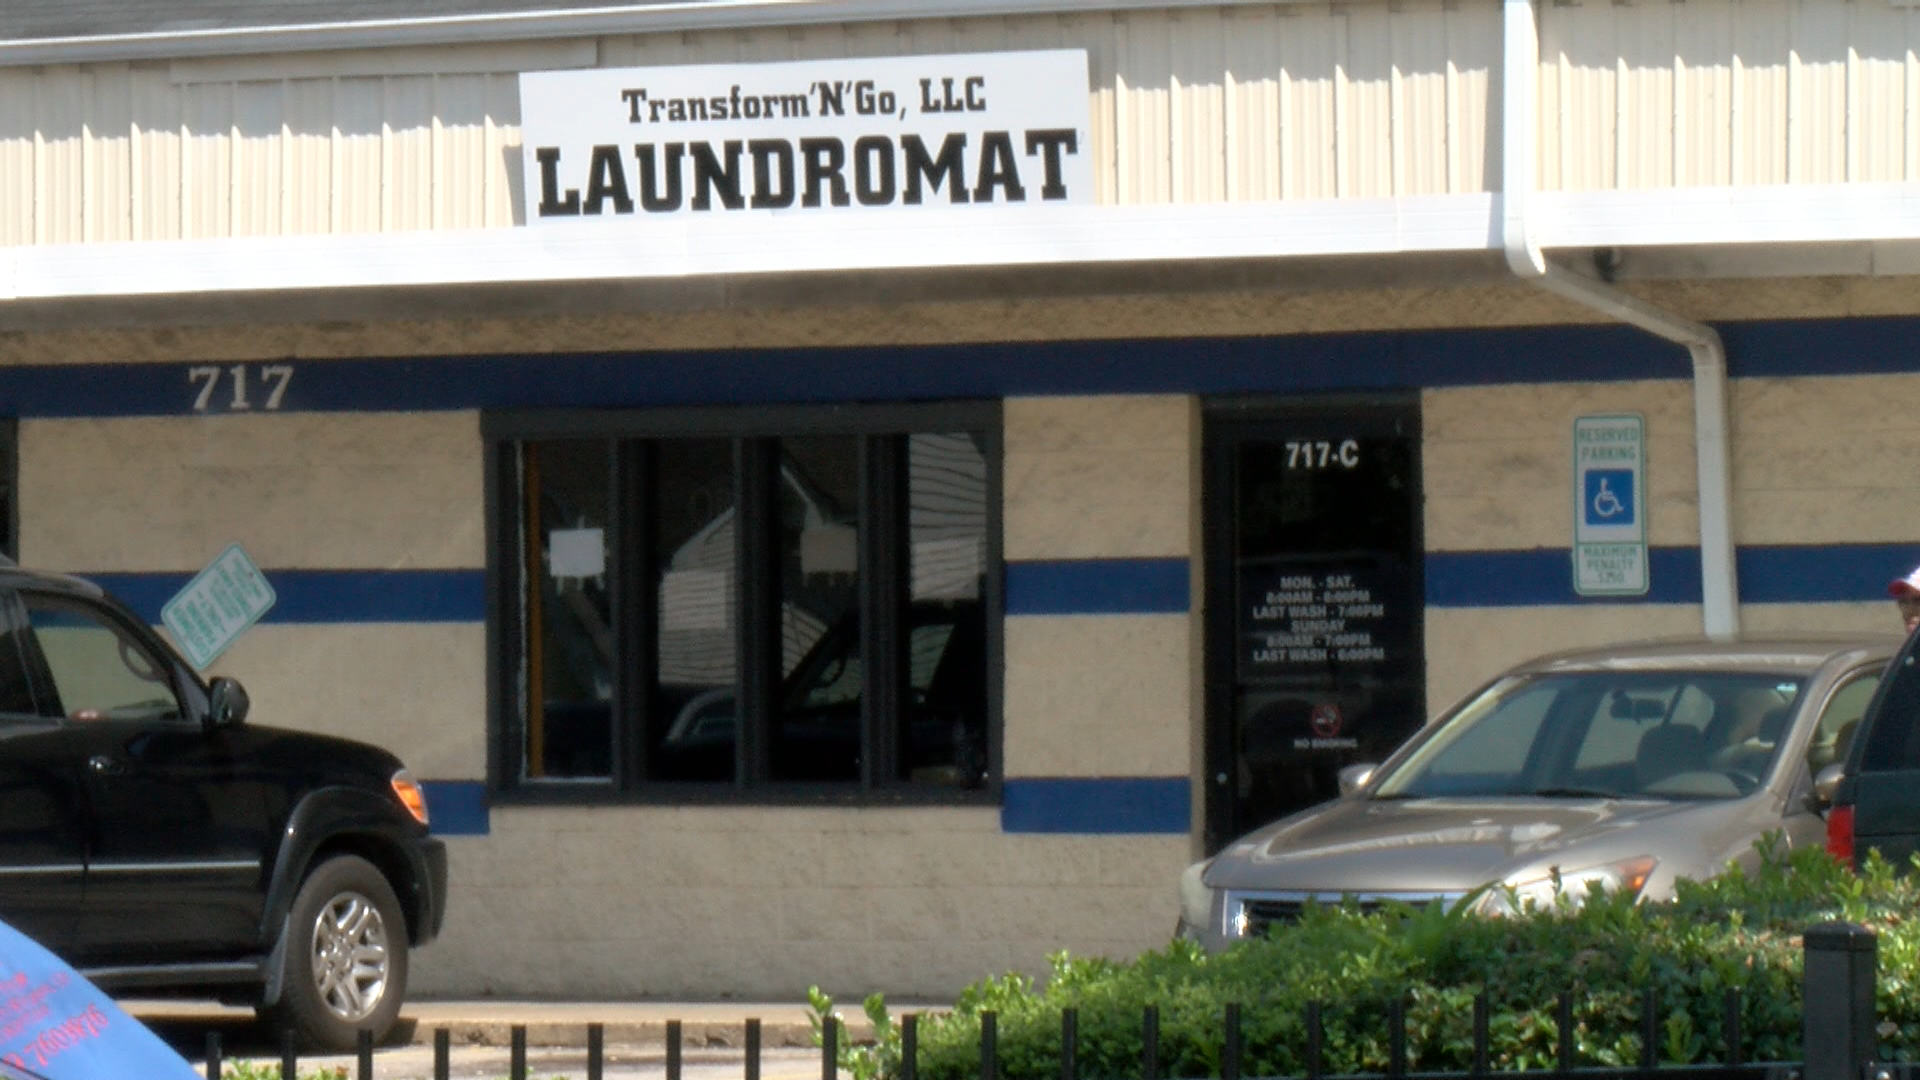 12 pounds of weed, pills, $60K seized in Raleigh laundromat bust